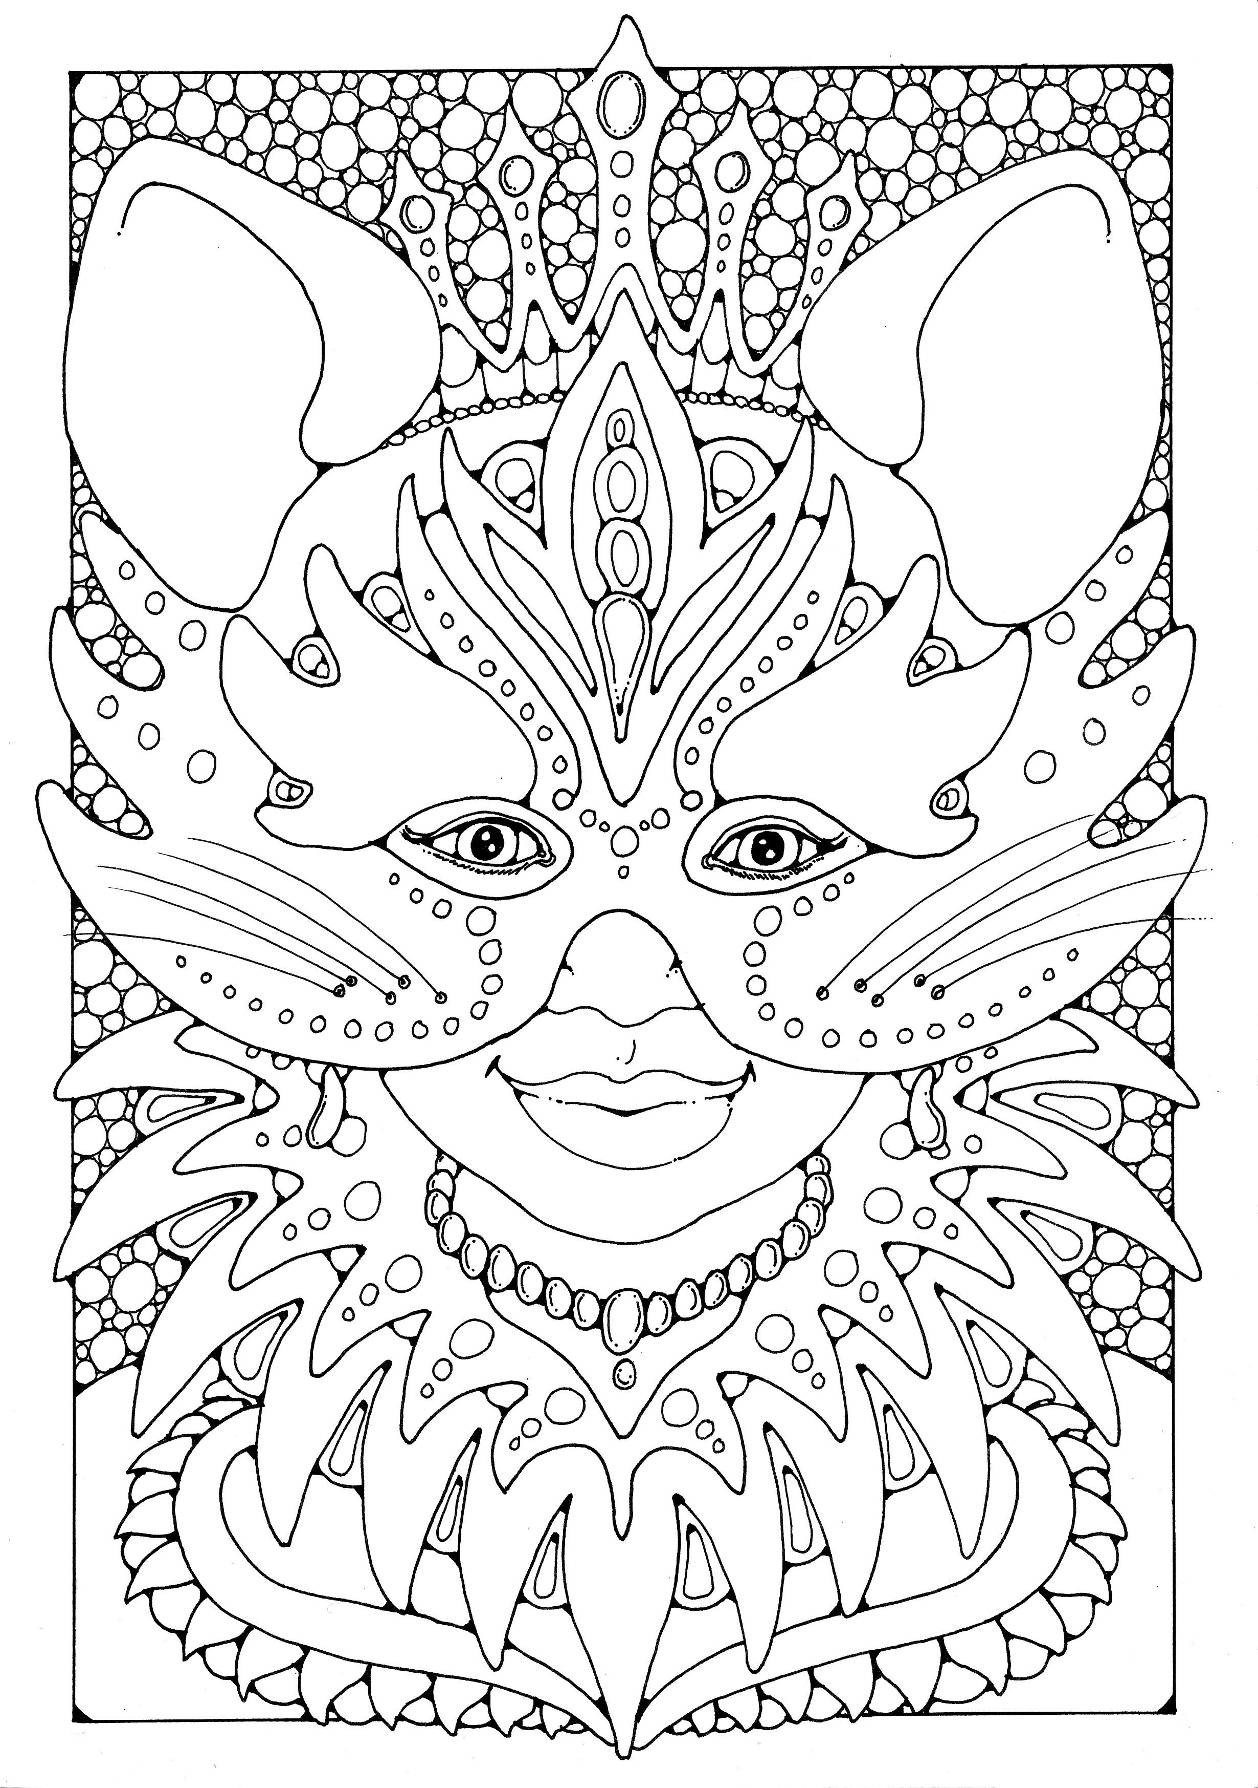 Carnival Coloring Sheets For Kids  Carnival Coloring Pages coloringsuite